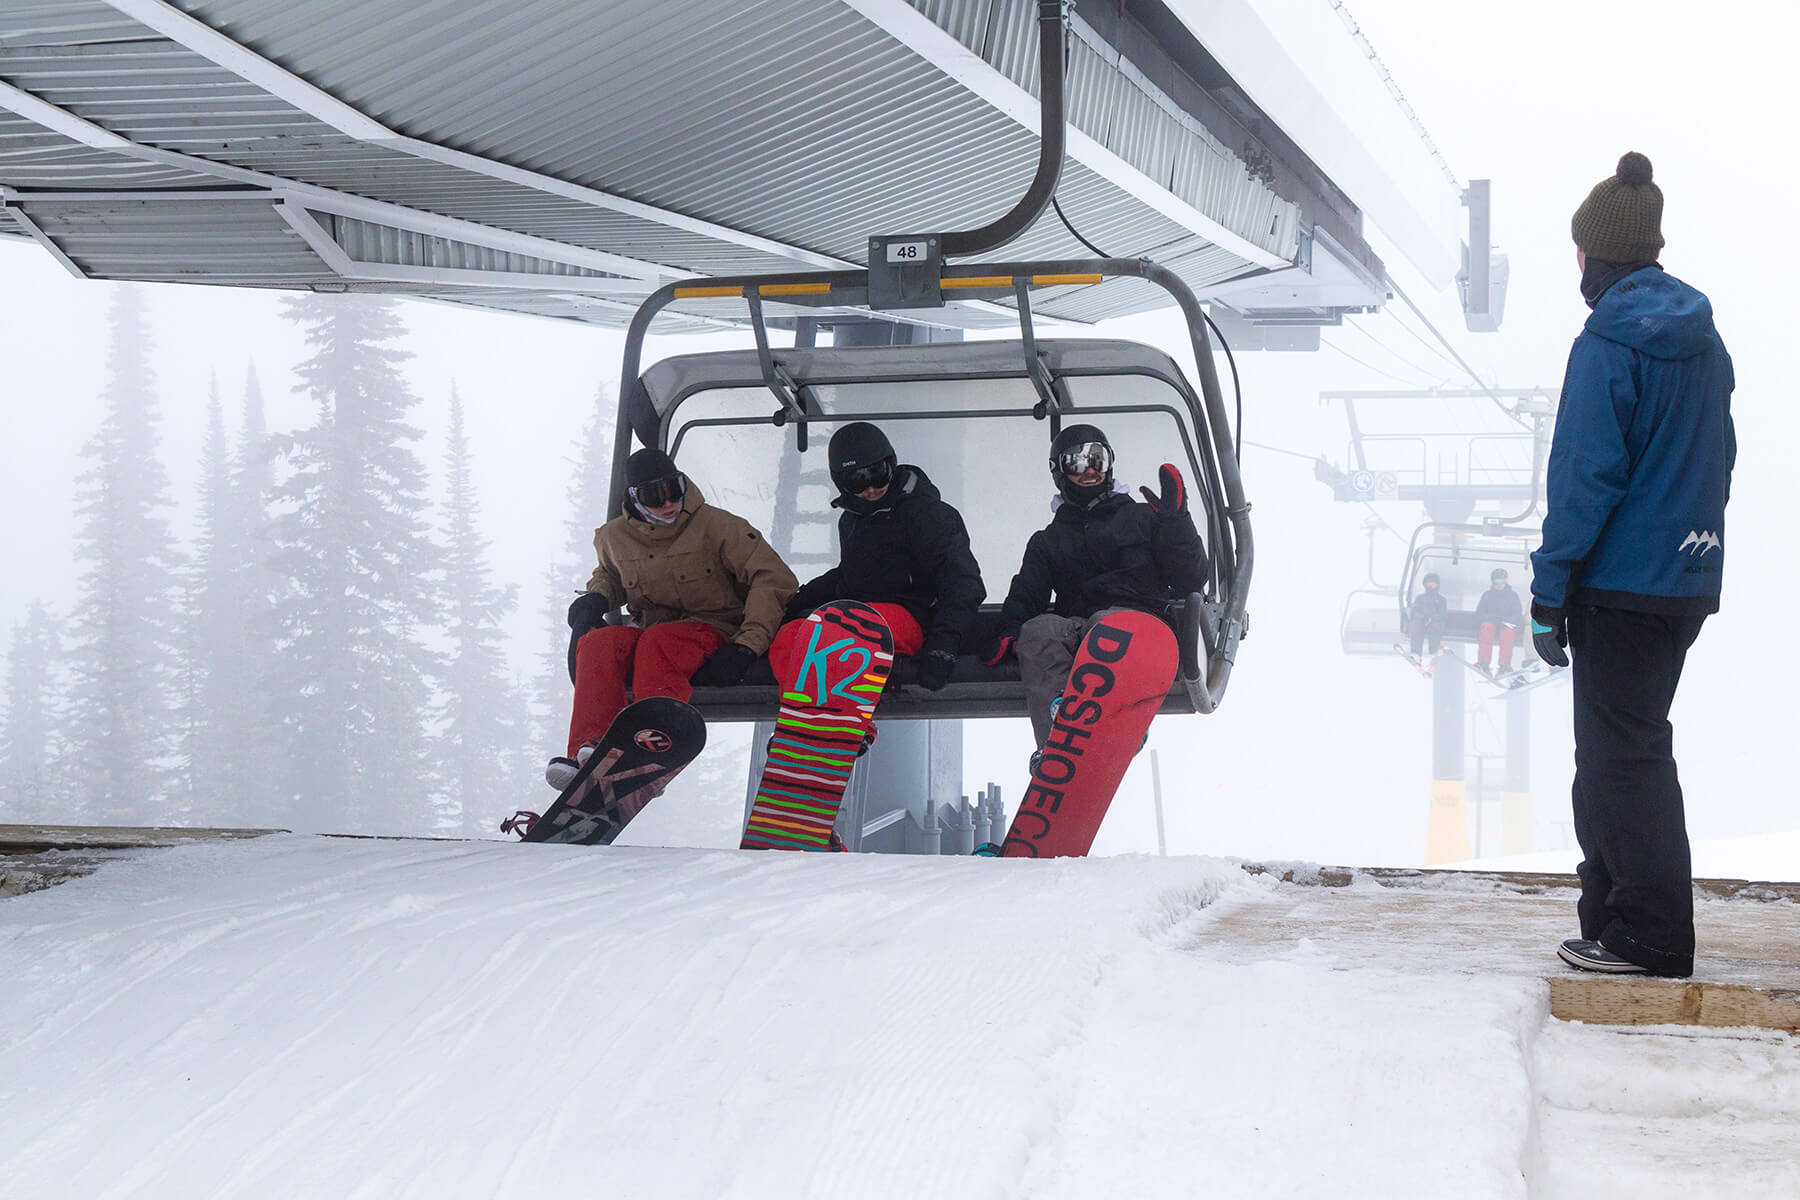 Chairlift on Opening Day at Sun Peaks Resort